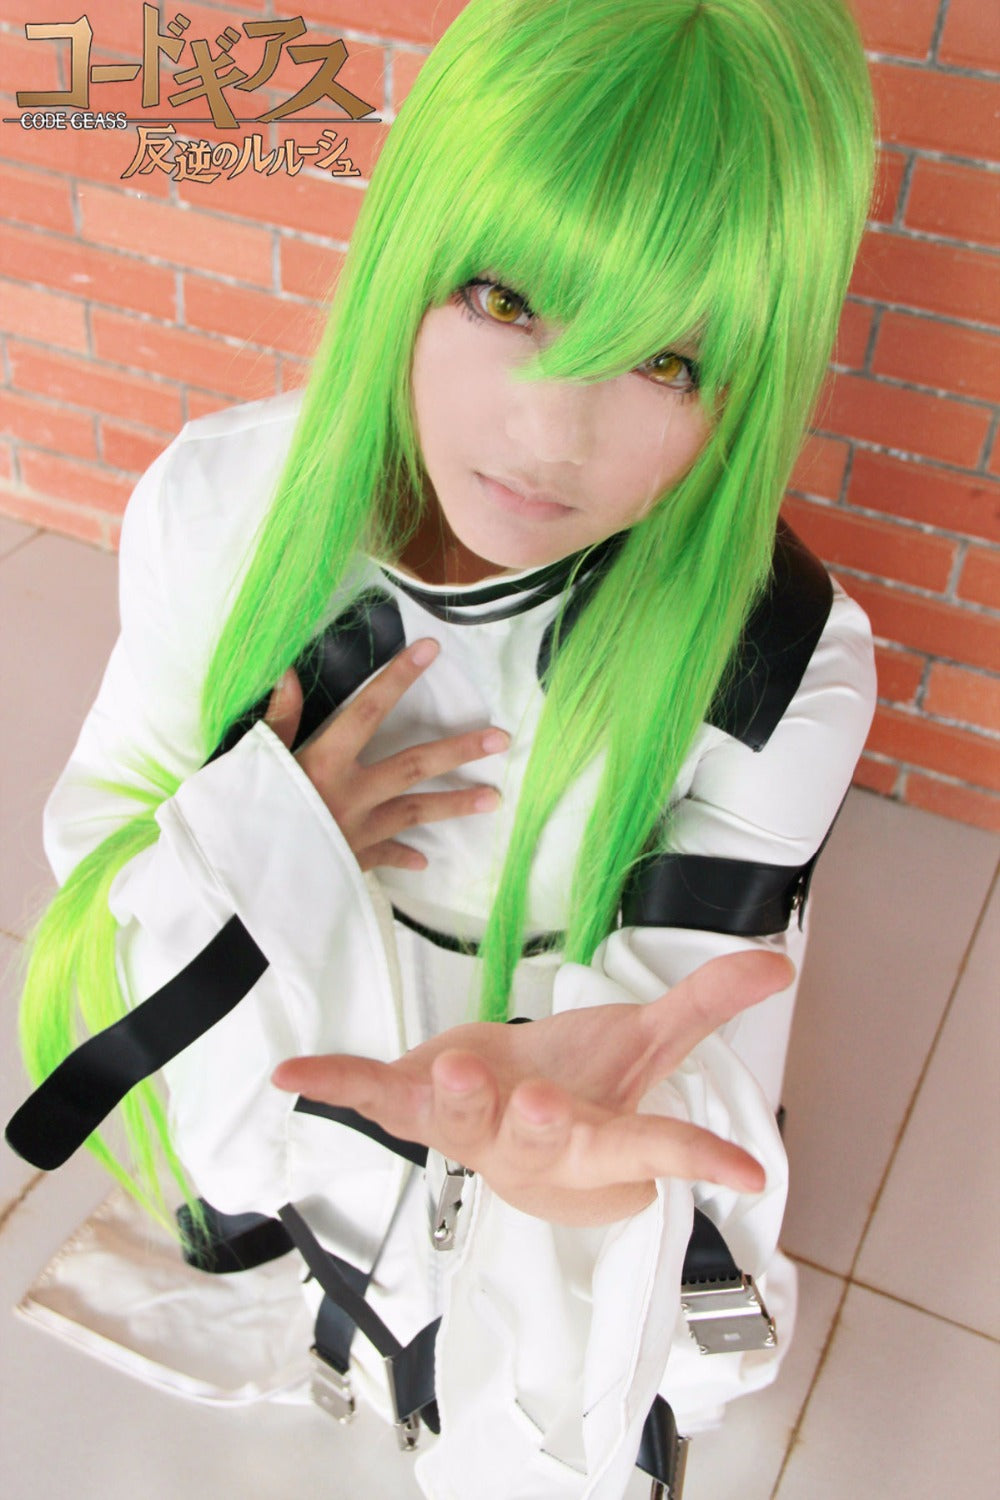 Code Geass Ccwhite Uniform Anime Cosplay Costume Cosplay Infinity